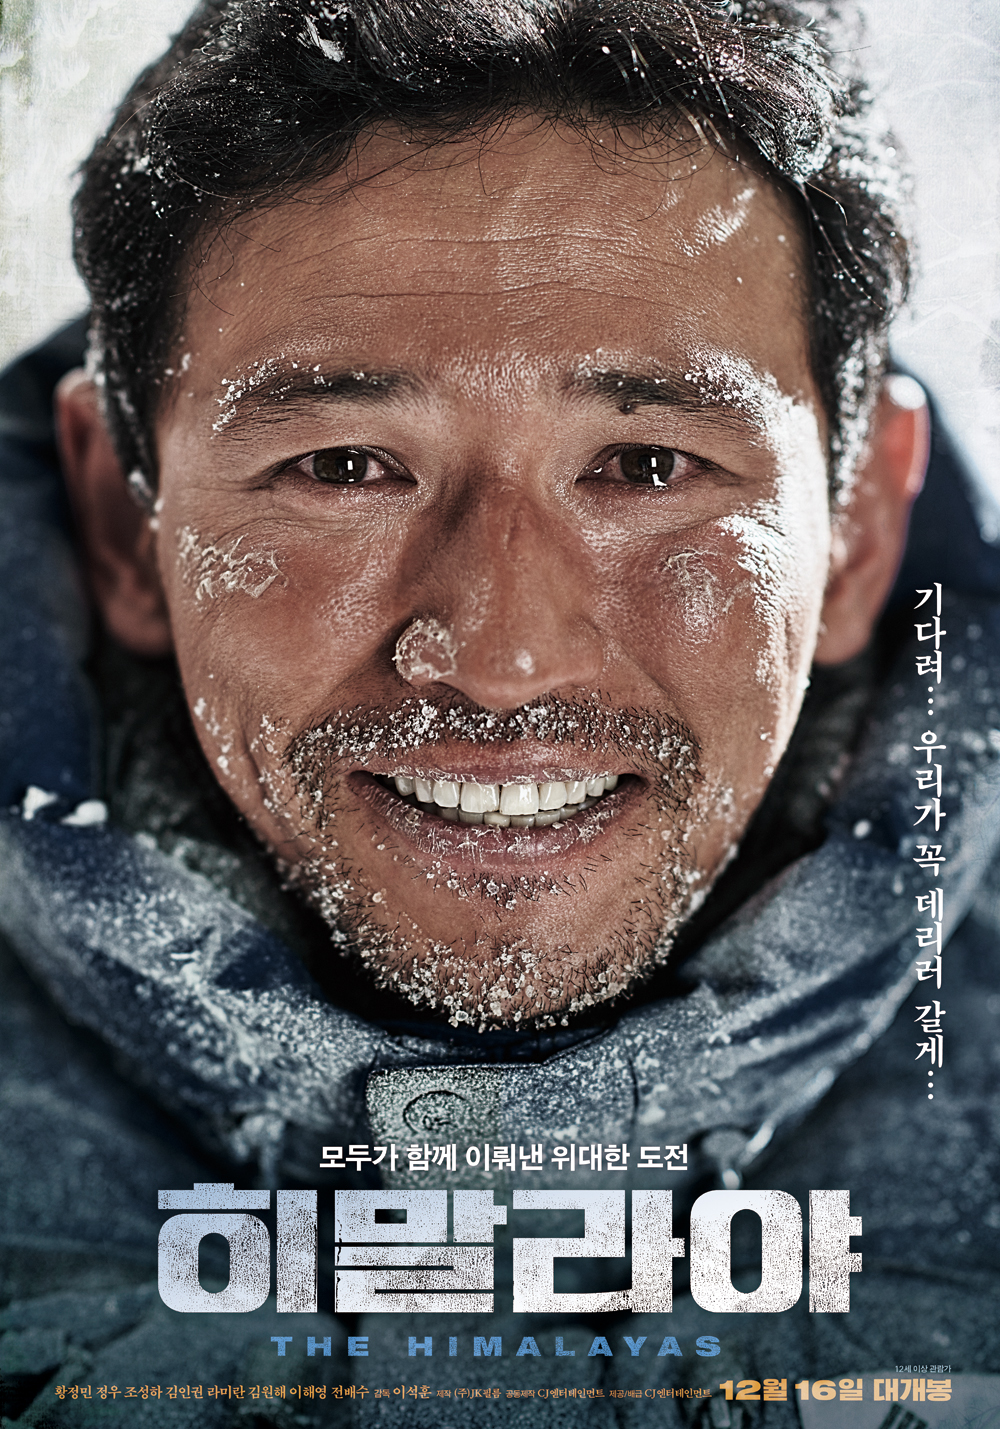 히말라야 (The Himalayas, 2015)